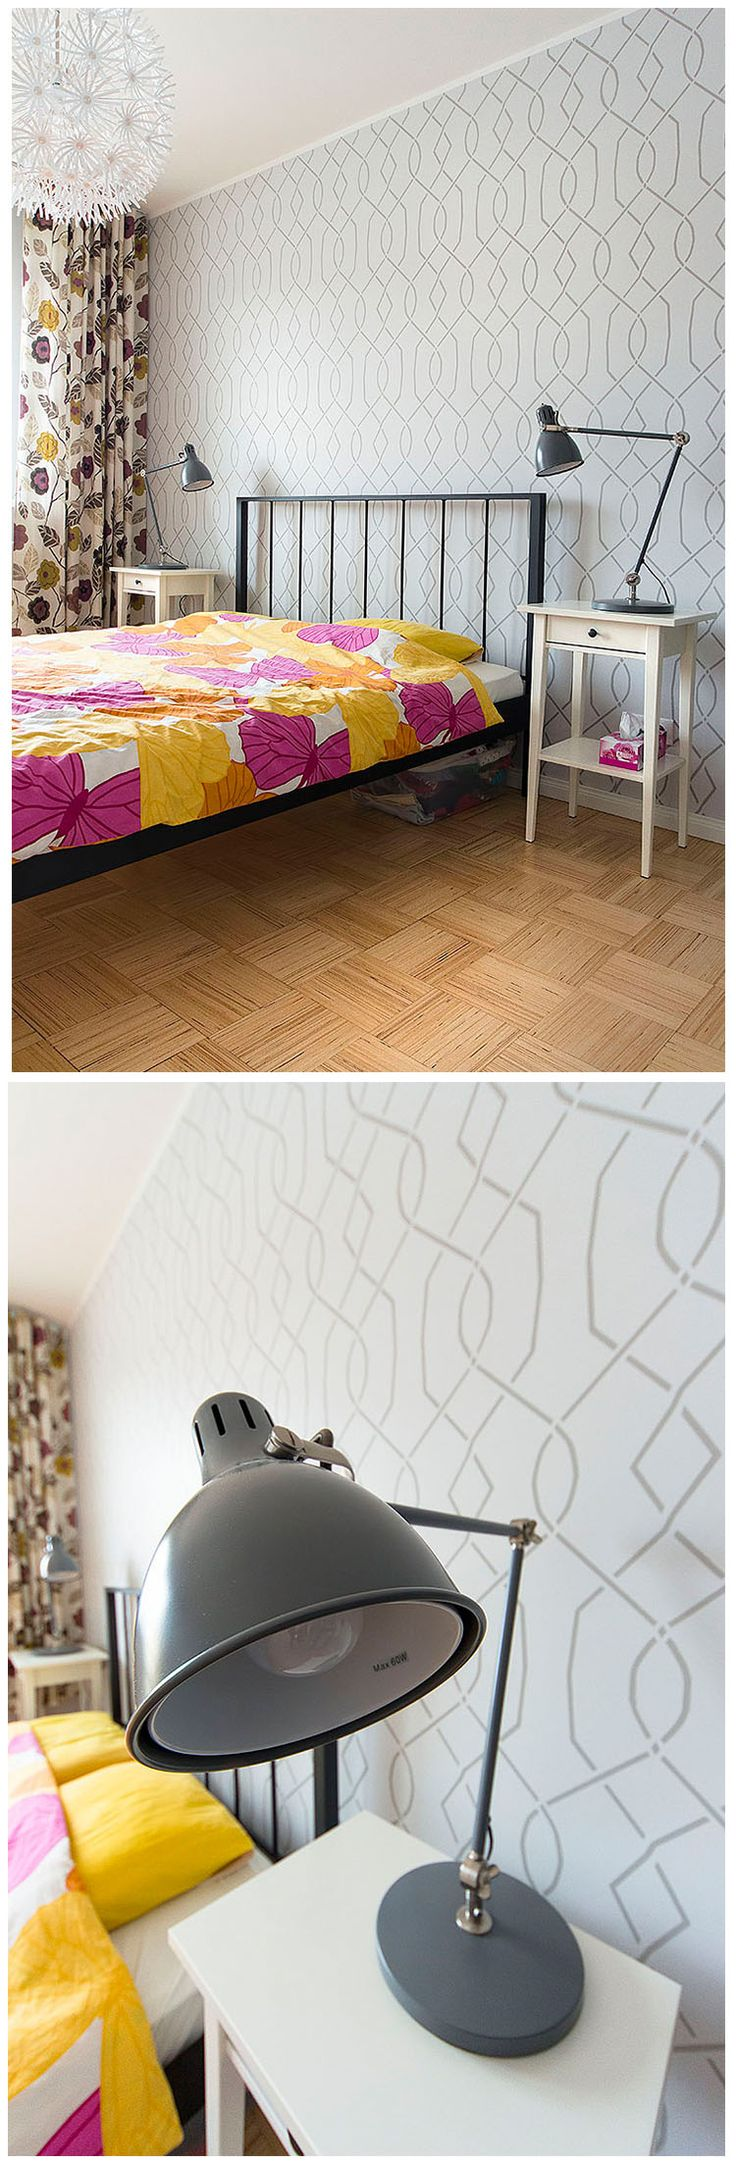 94 best wall stencils images on pinterest wall stenciling a touch of color and patterns to this beautiful scandinavian interior moorish trellis wall stencil amipublicfo Image collections